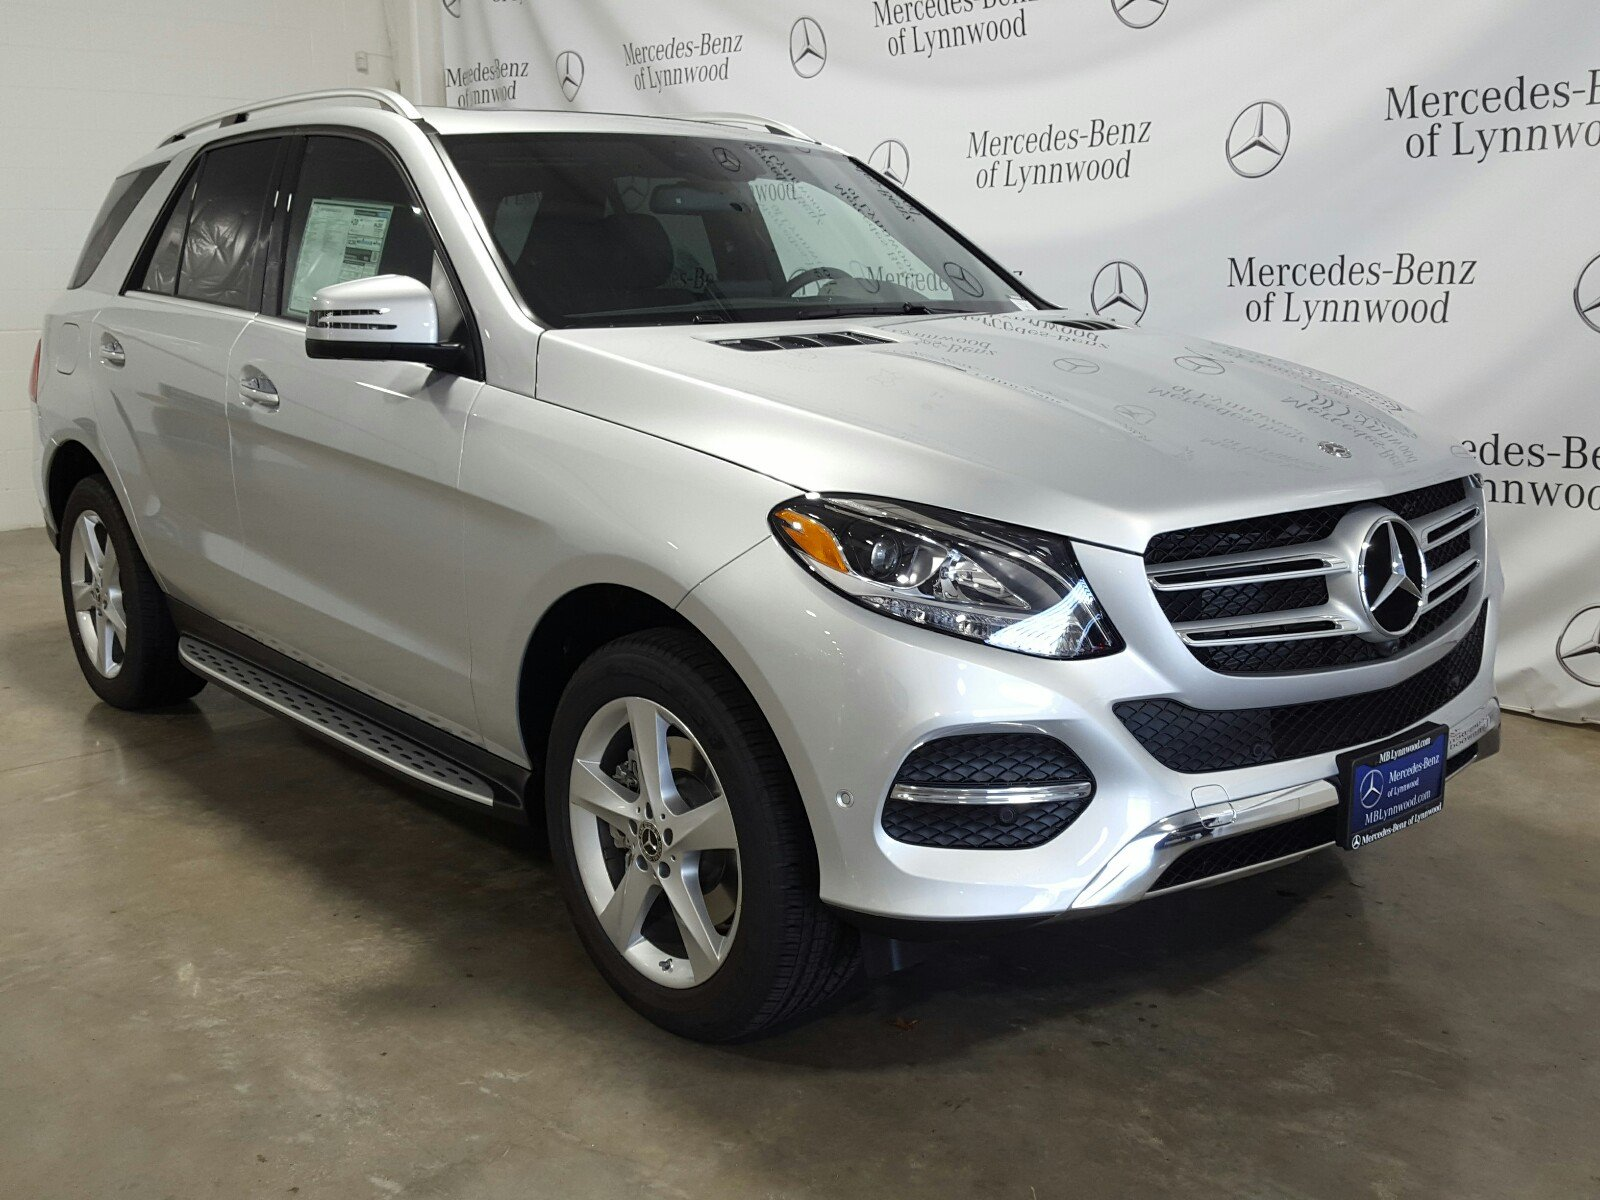 New 2019 Mercedes Benz GLE GLE 400 4MATIC SUV in Lynnwood